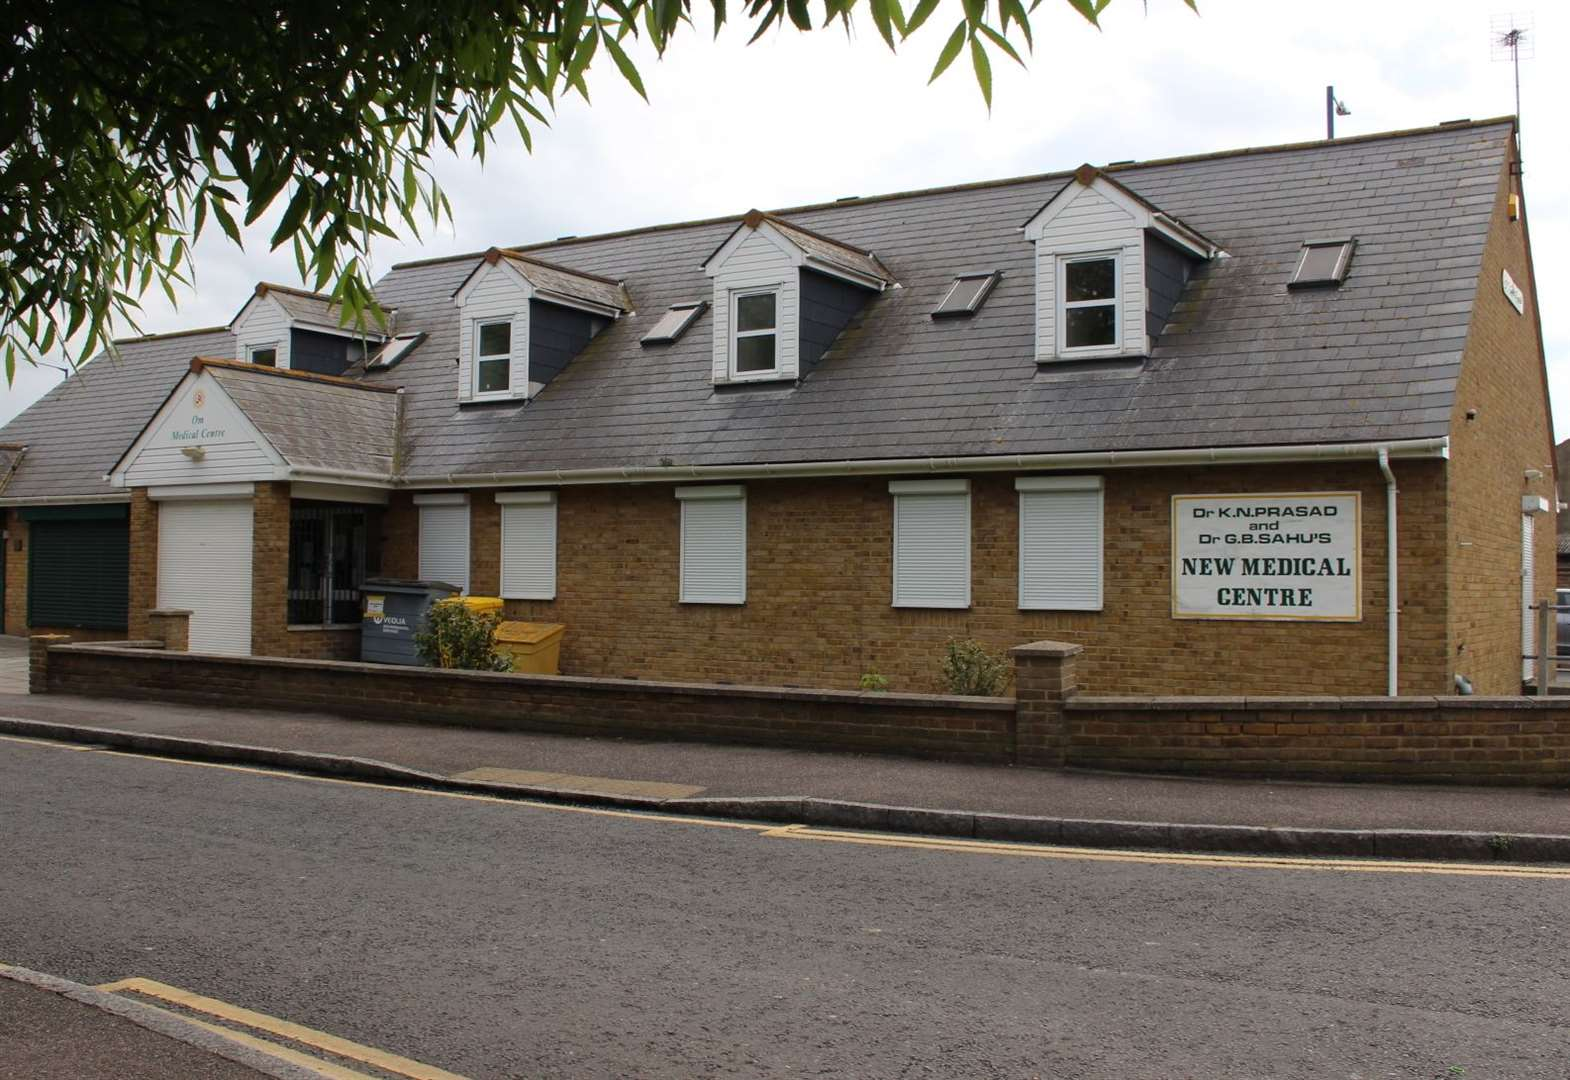 Medical centre improves after warning